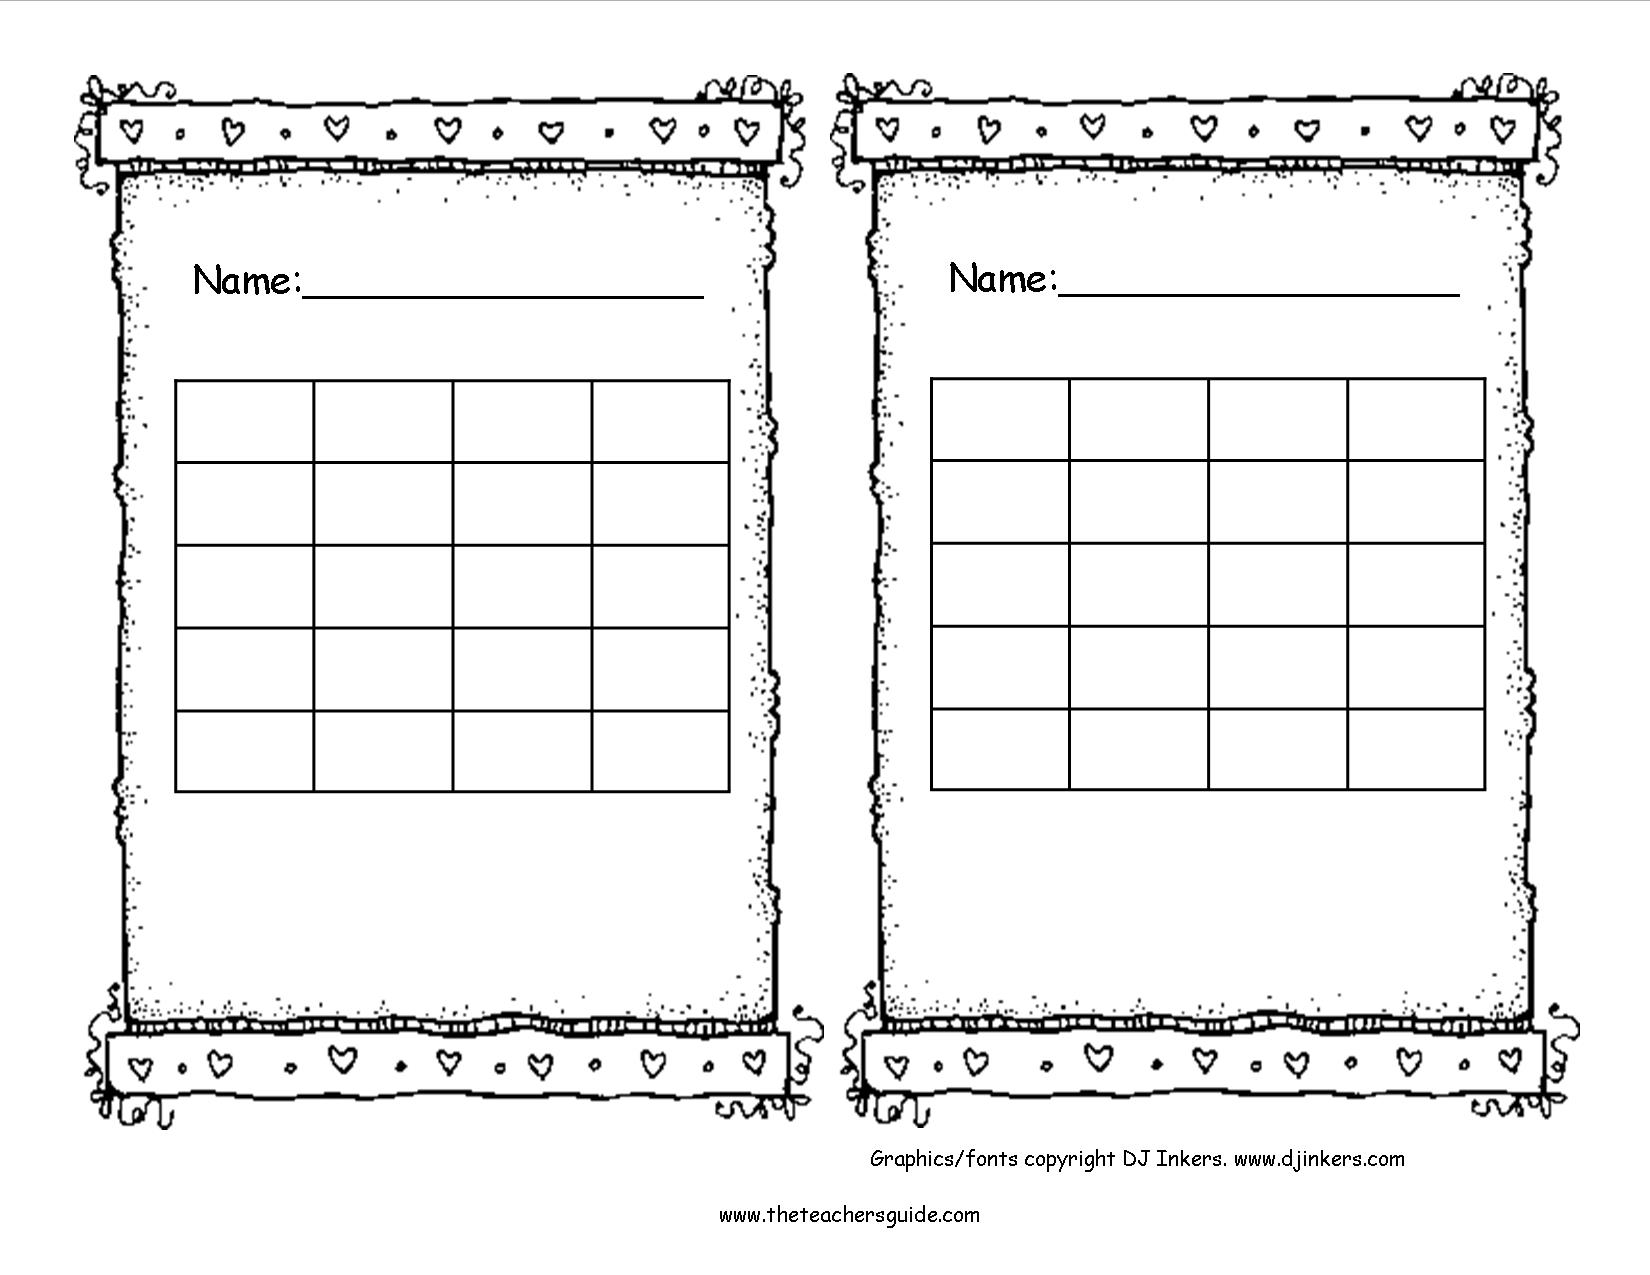 image regarding Free Printable Sticker Charts referred to as Absolutely free Printable Sticker Chart area